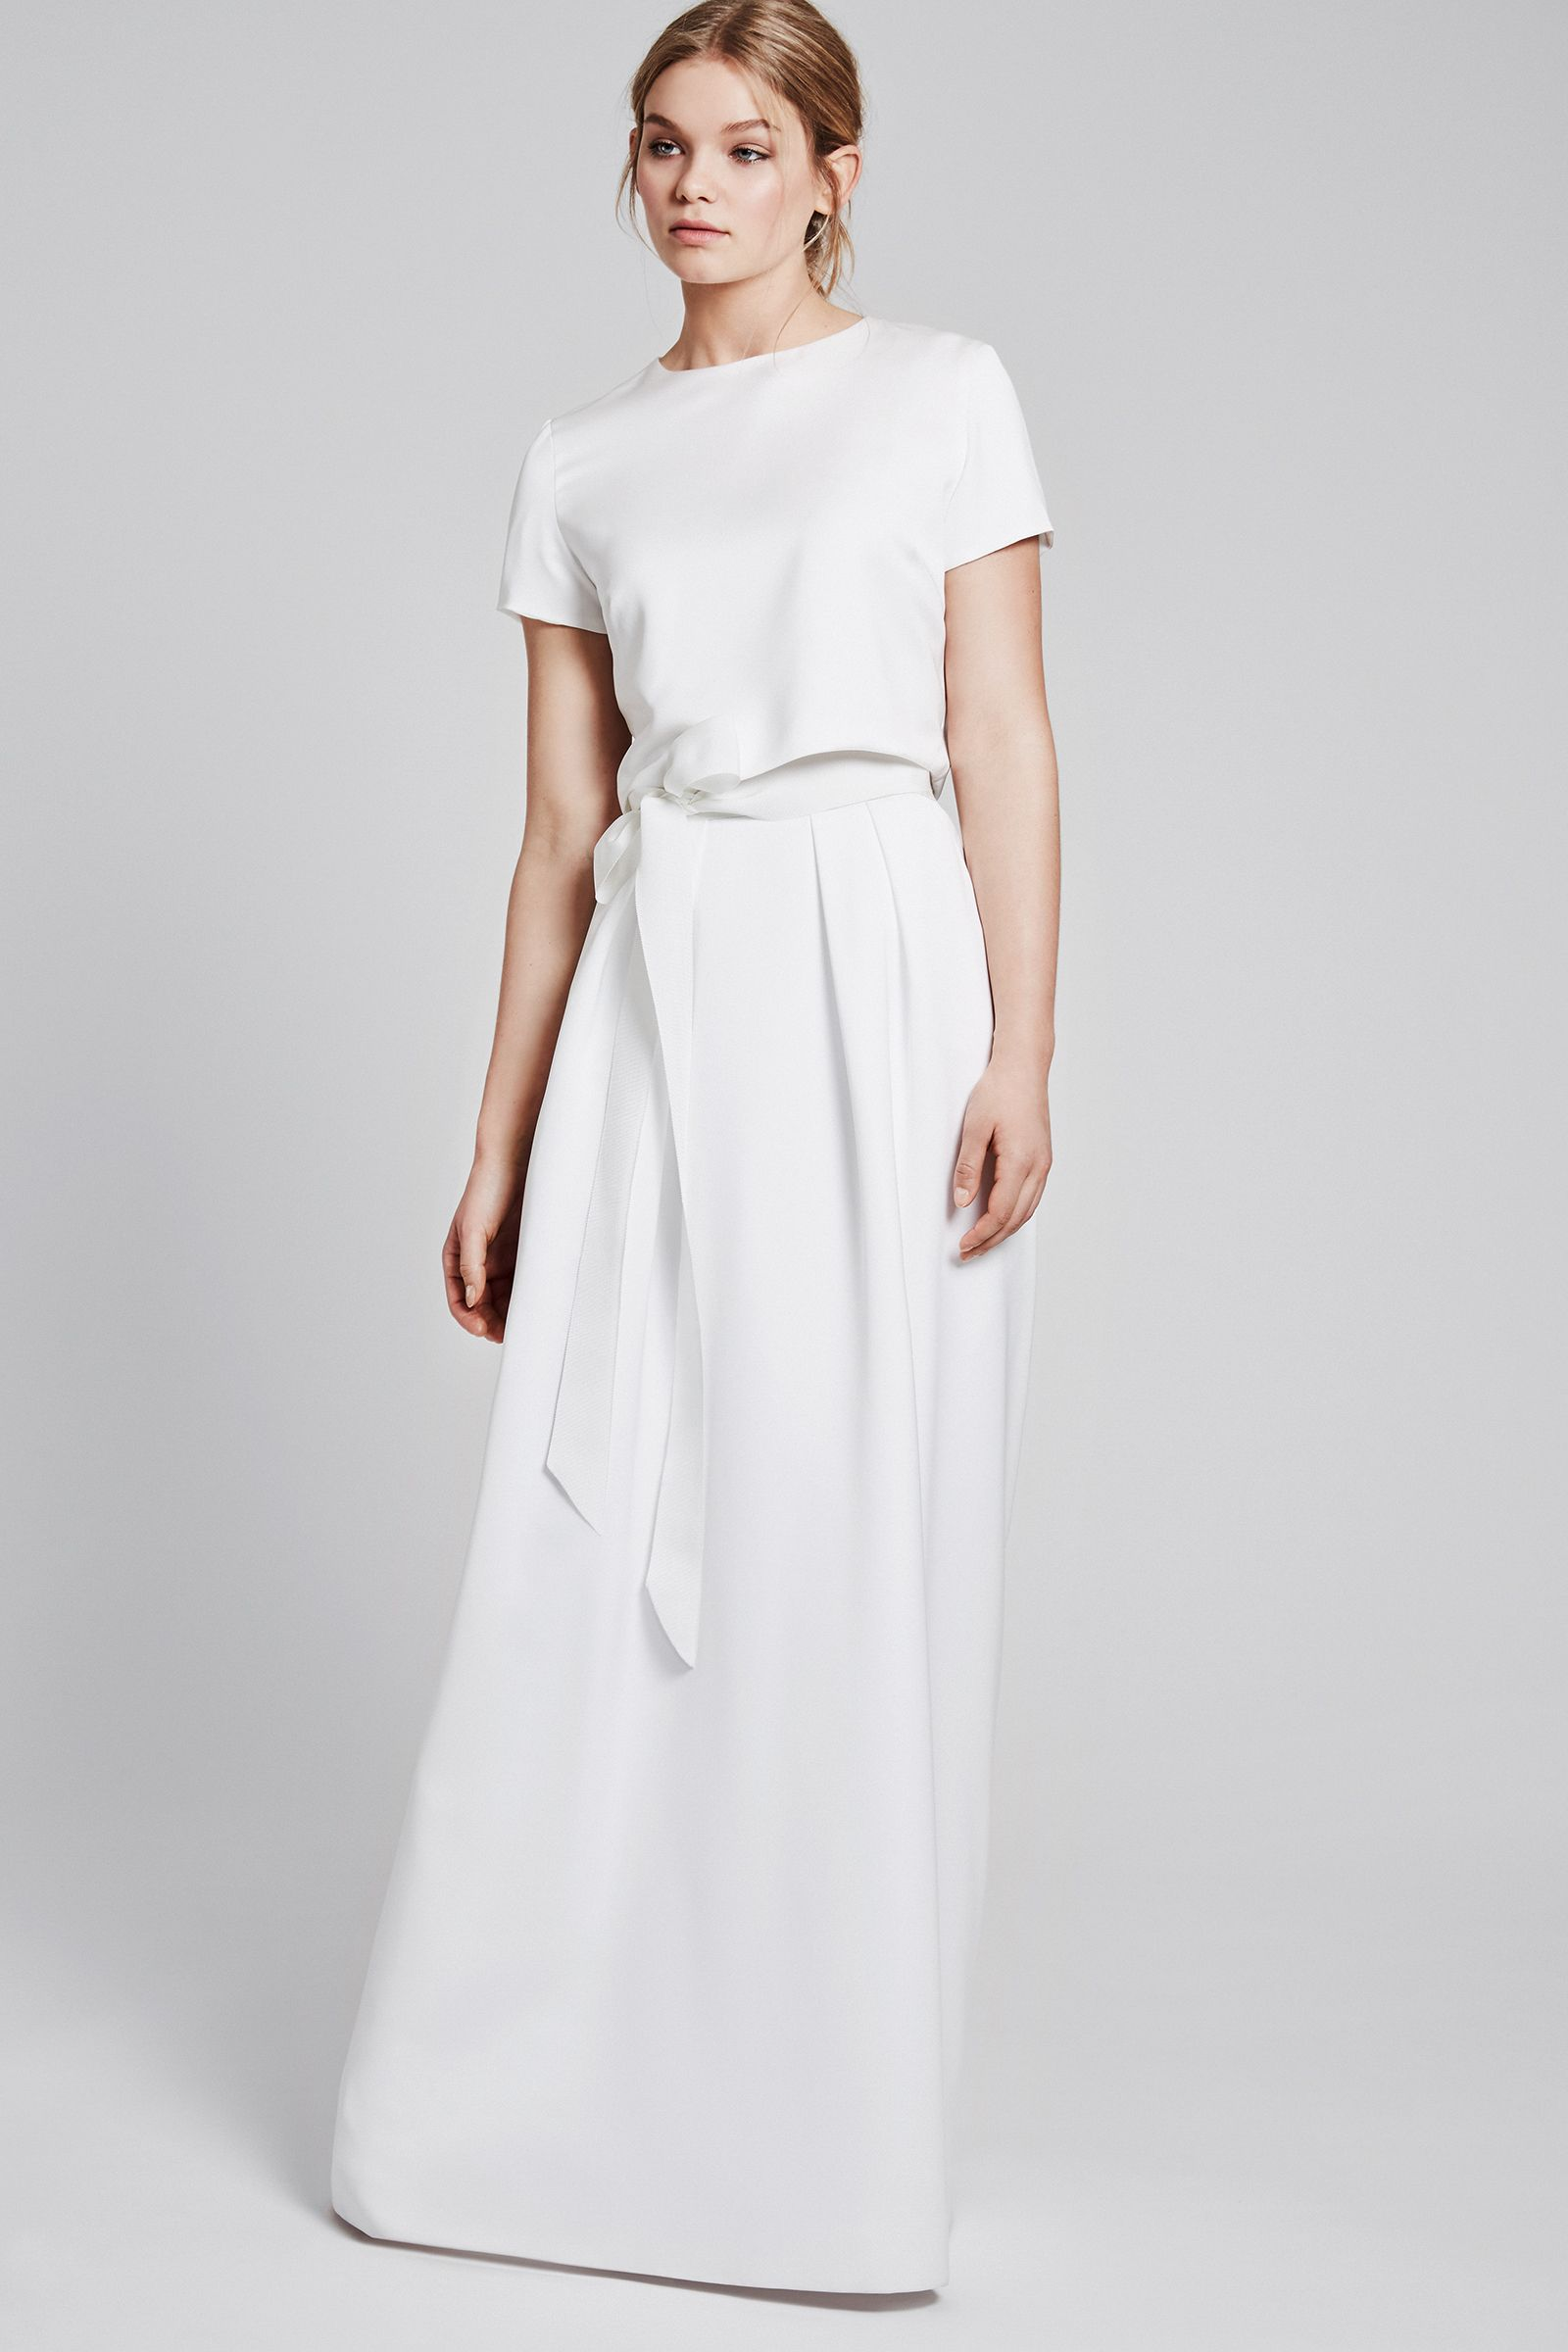 Modern simply wedding dress - ANINA-ISABEL in ivory with a ribbon